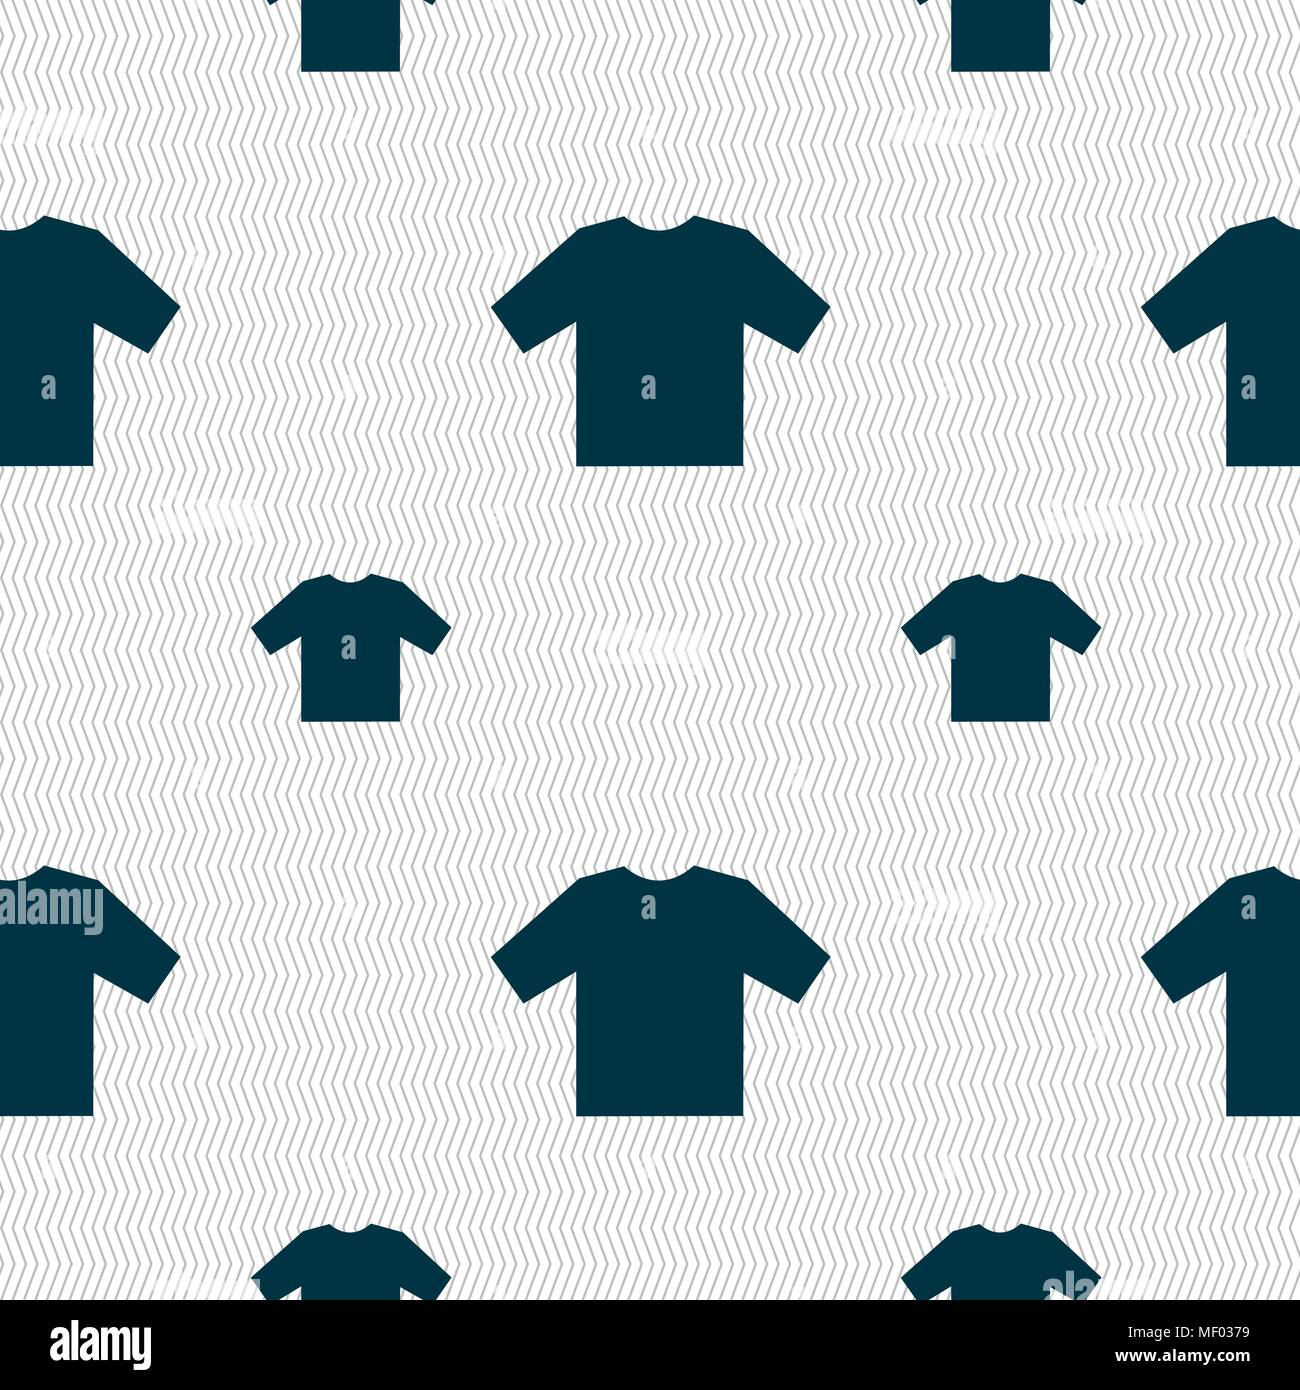 t-shirt icon sign  Seamless pattern with geometric texture